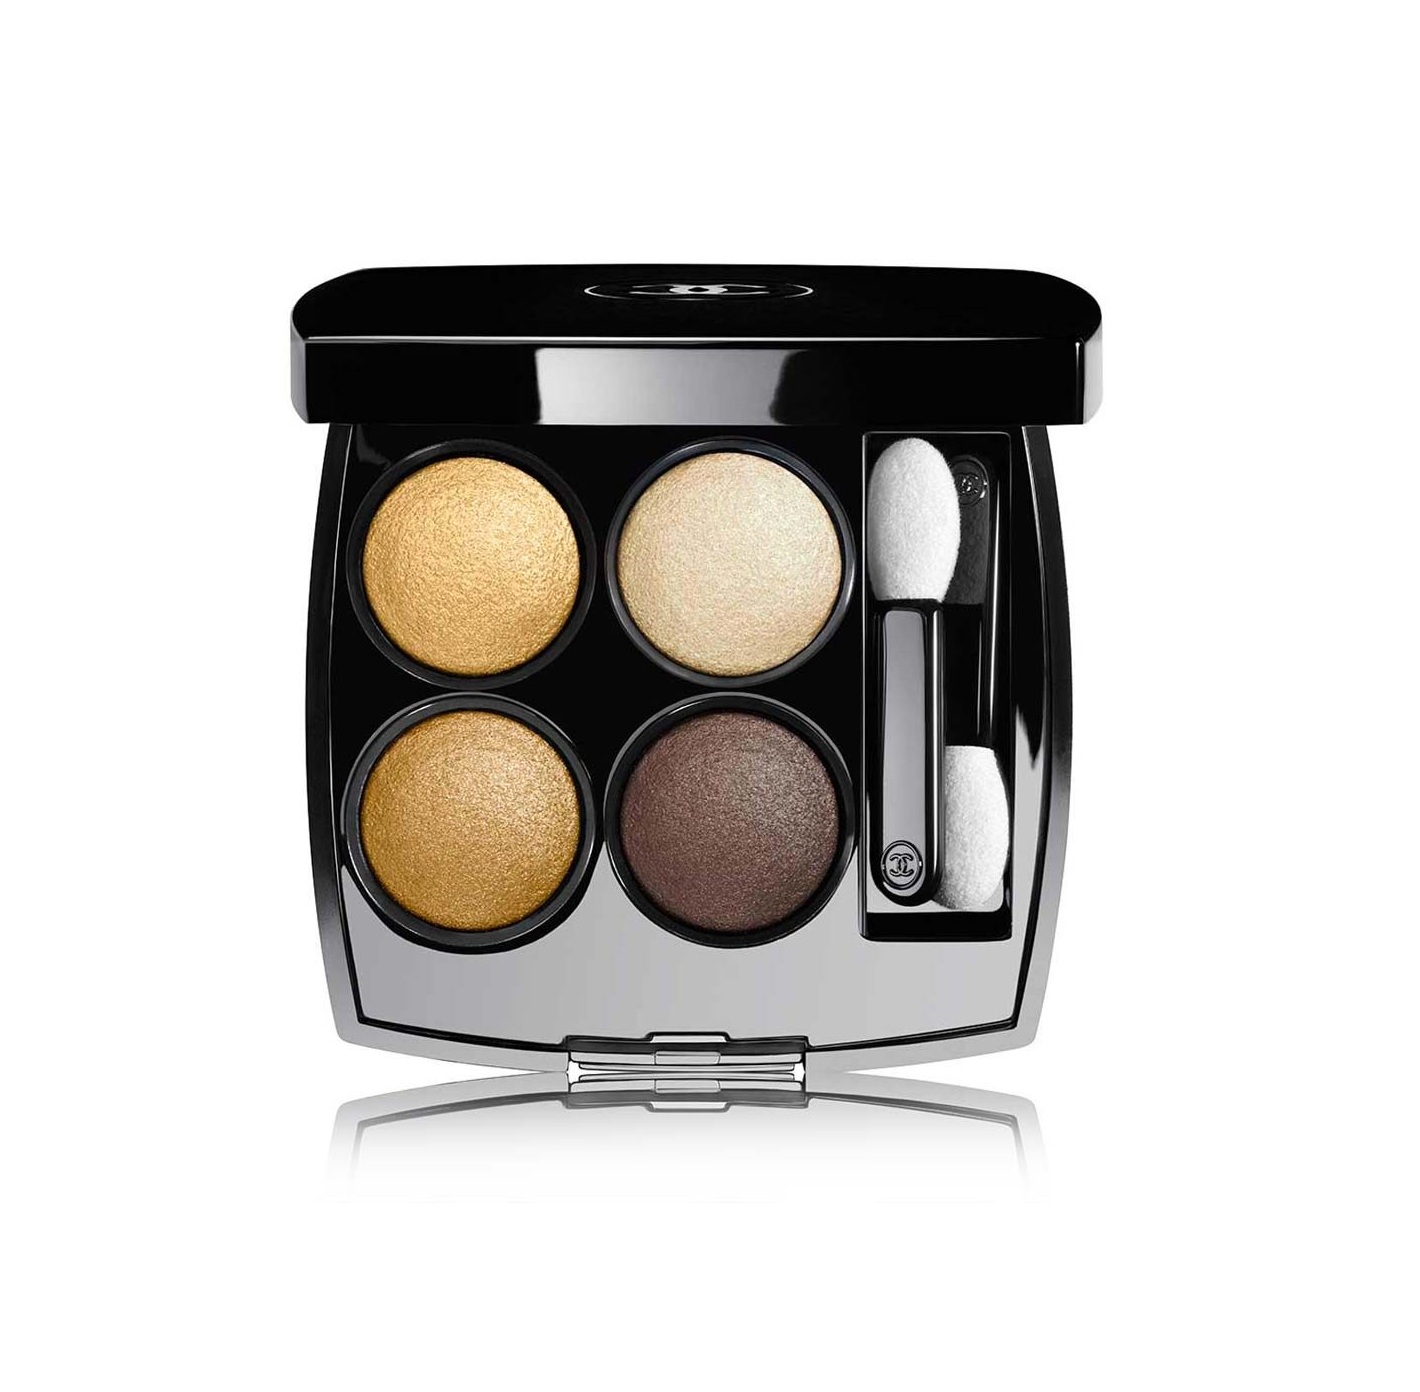 Chanel's Les 4 Ombres